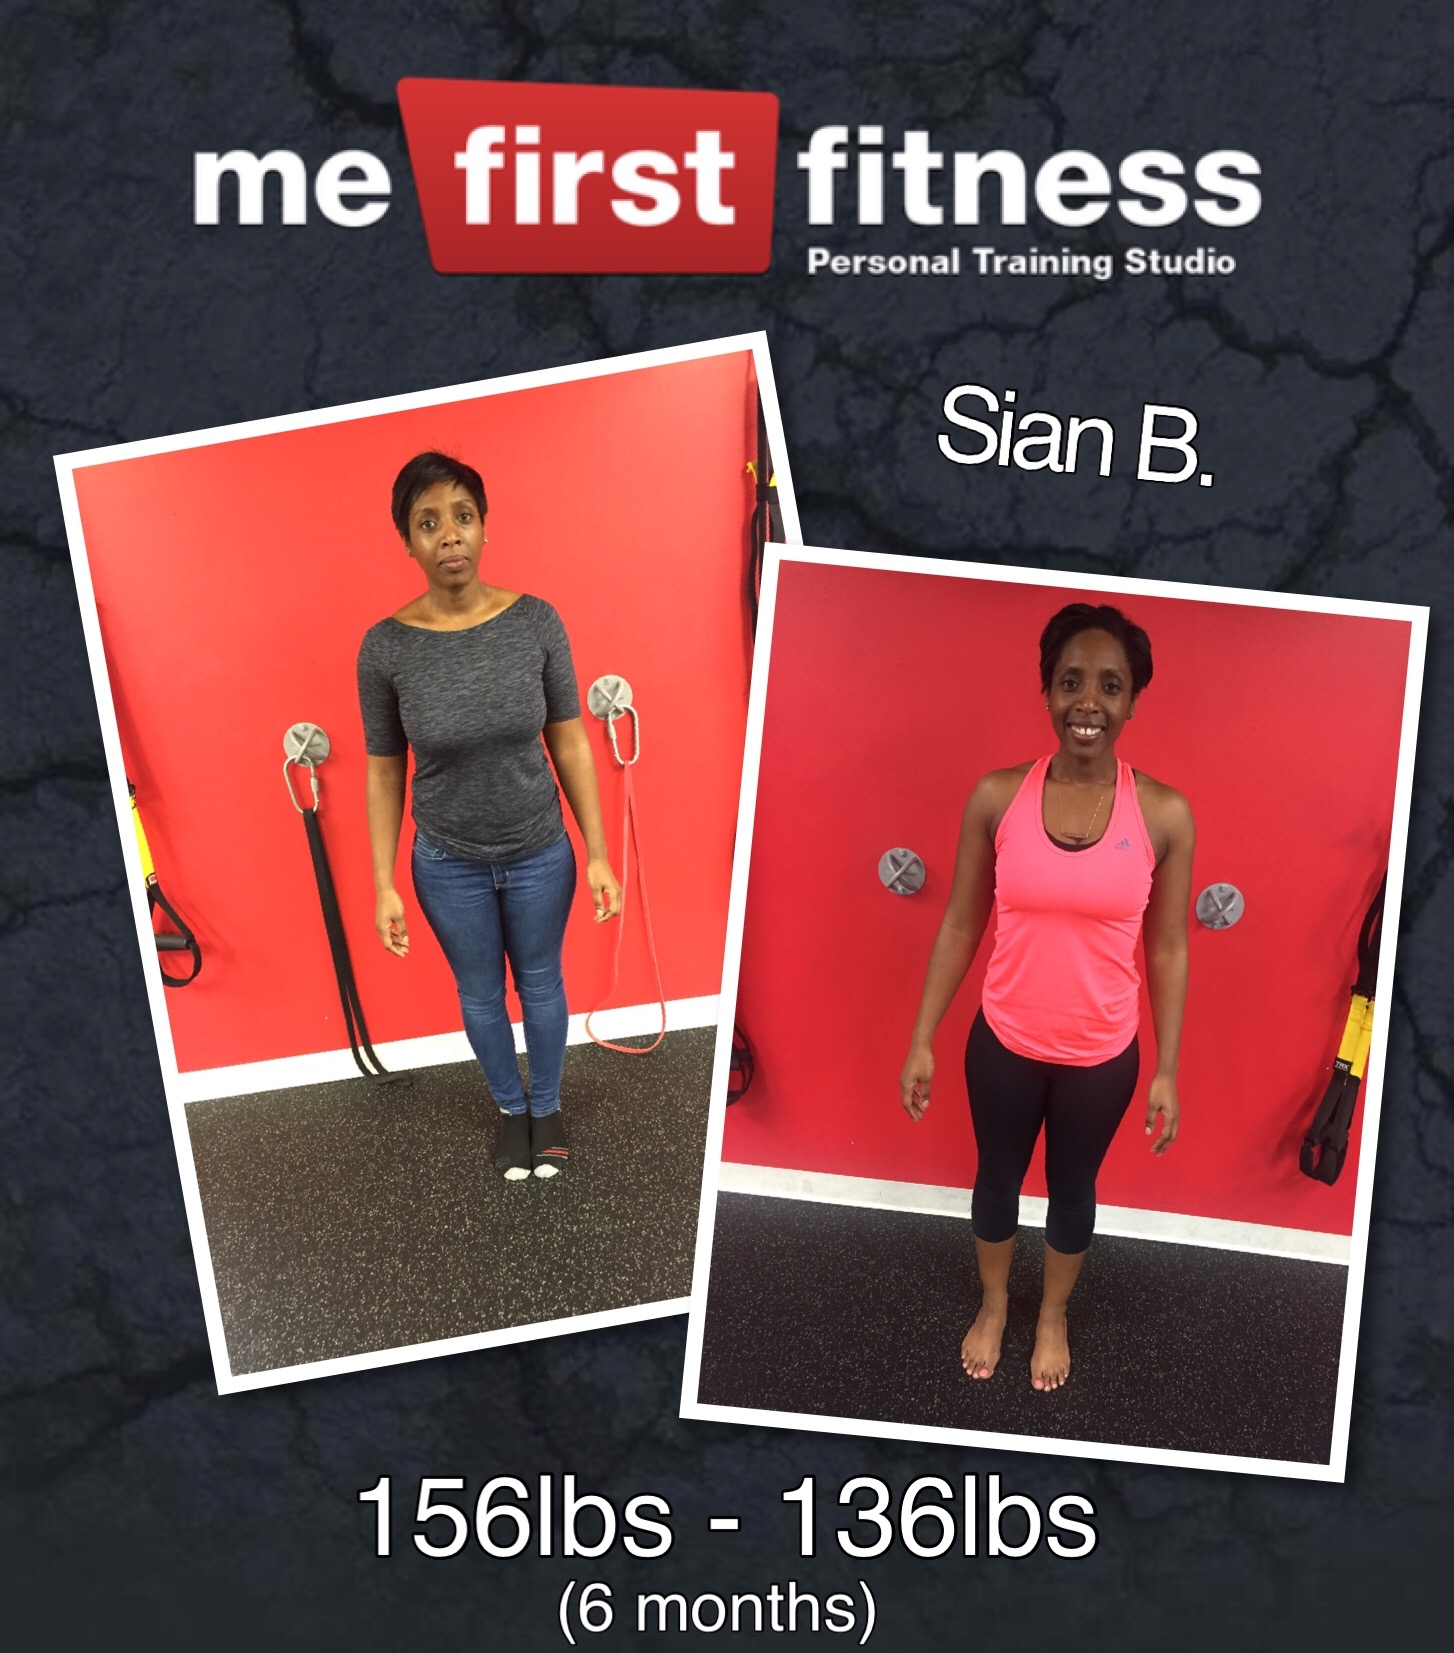 ME FIRST FITNESS AJAX PICKERING PERSONAL TRAINER